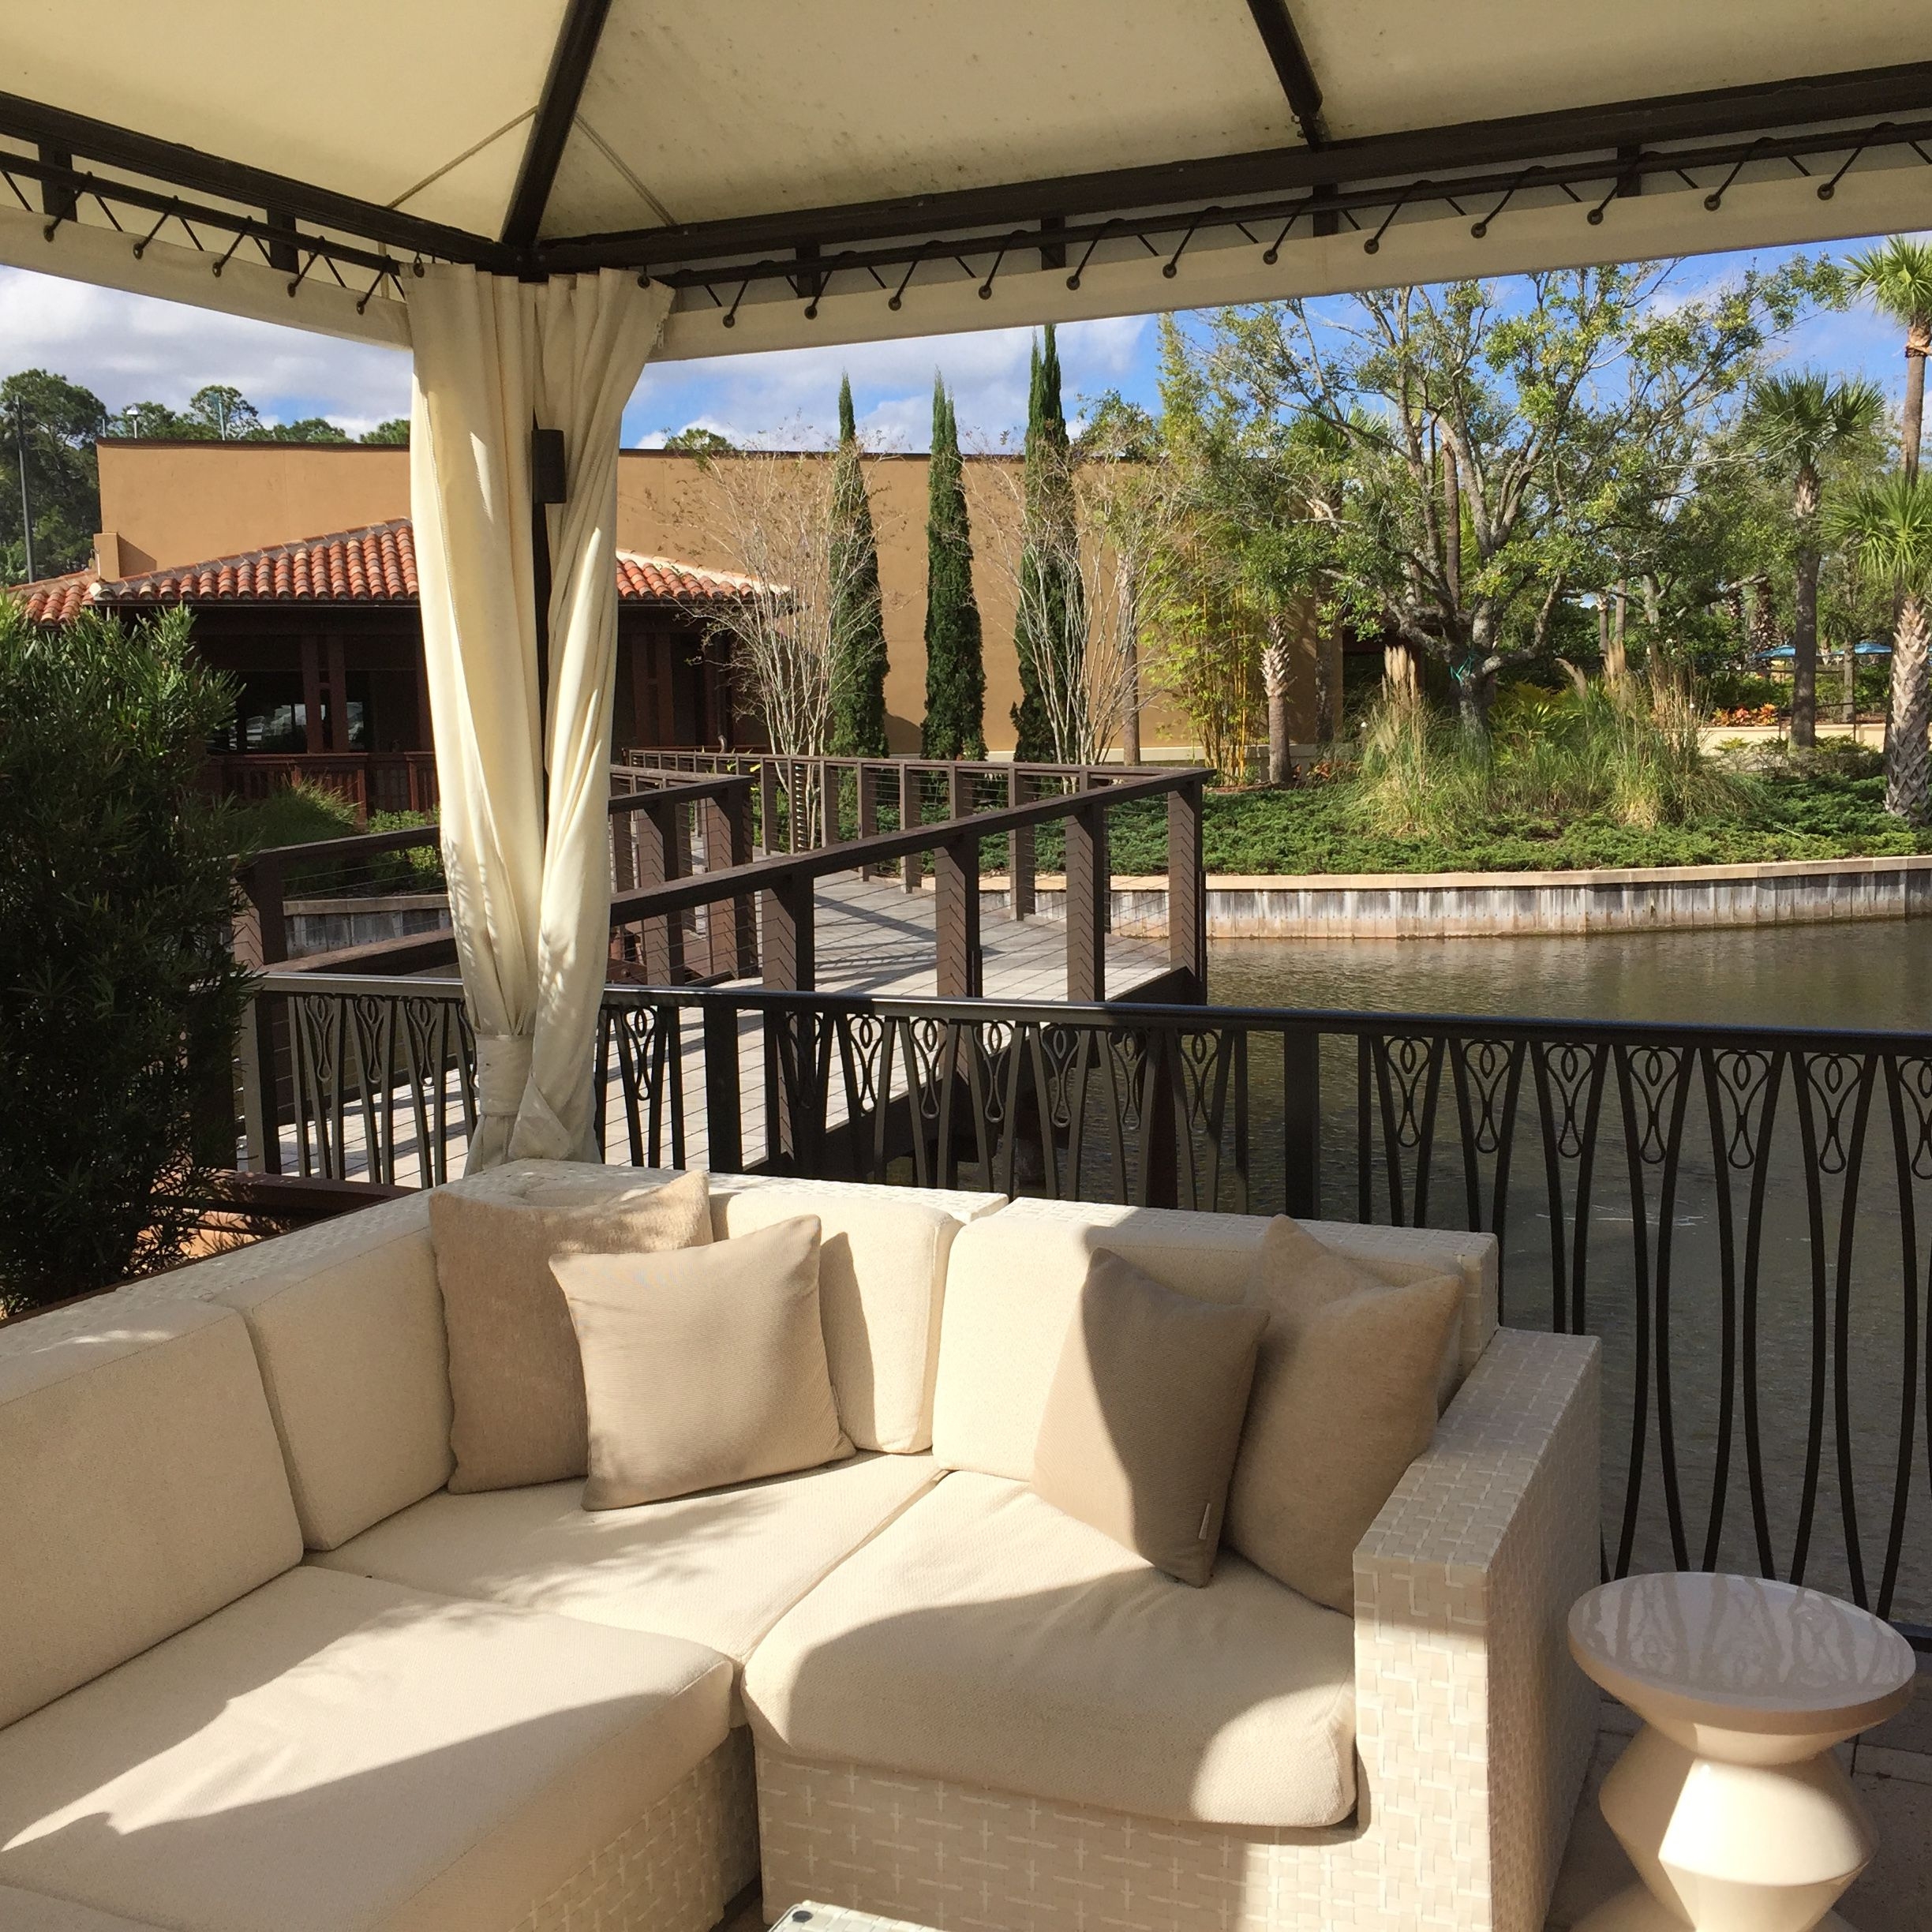 Patio Furniture Orlando Clearance: Pin By Forrest Haskins On Designs At The Four Seasons